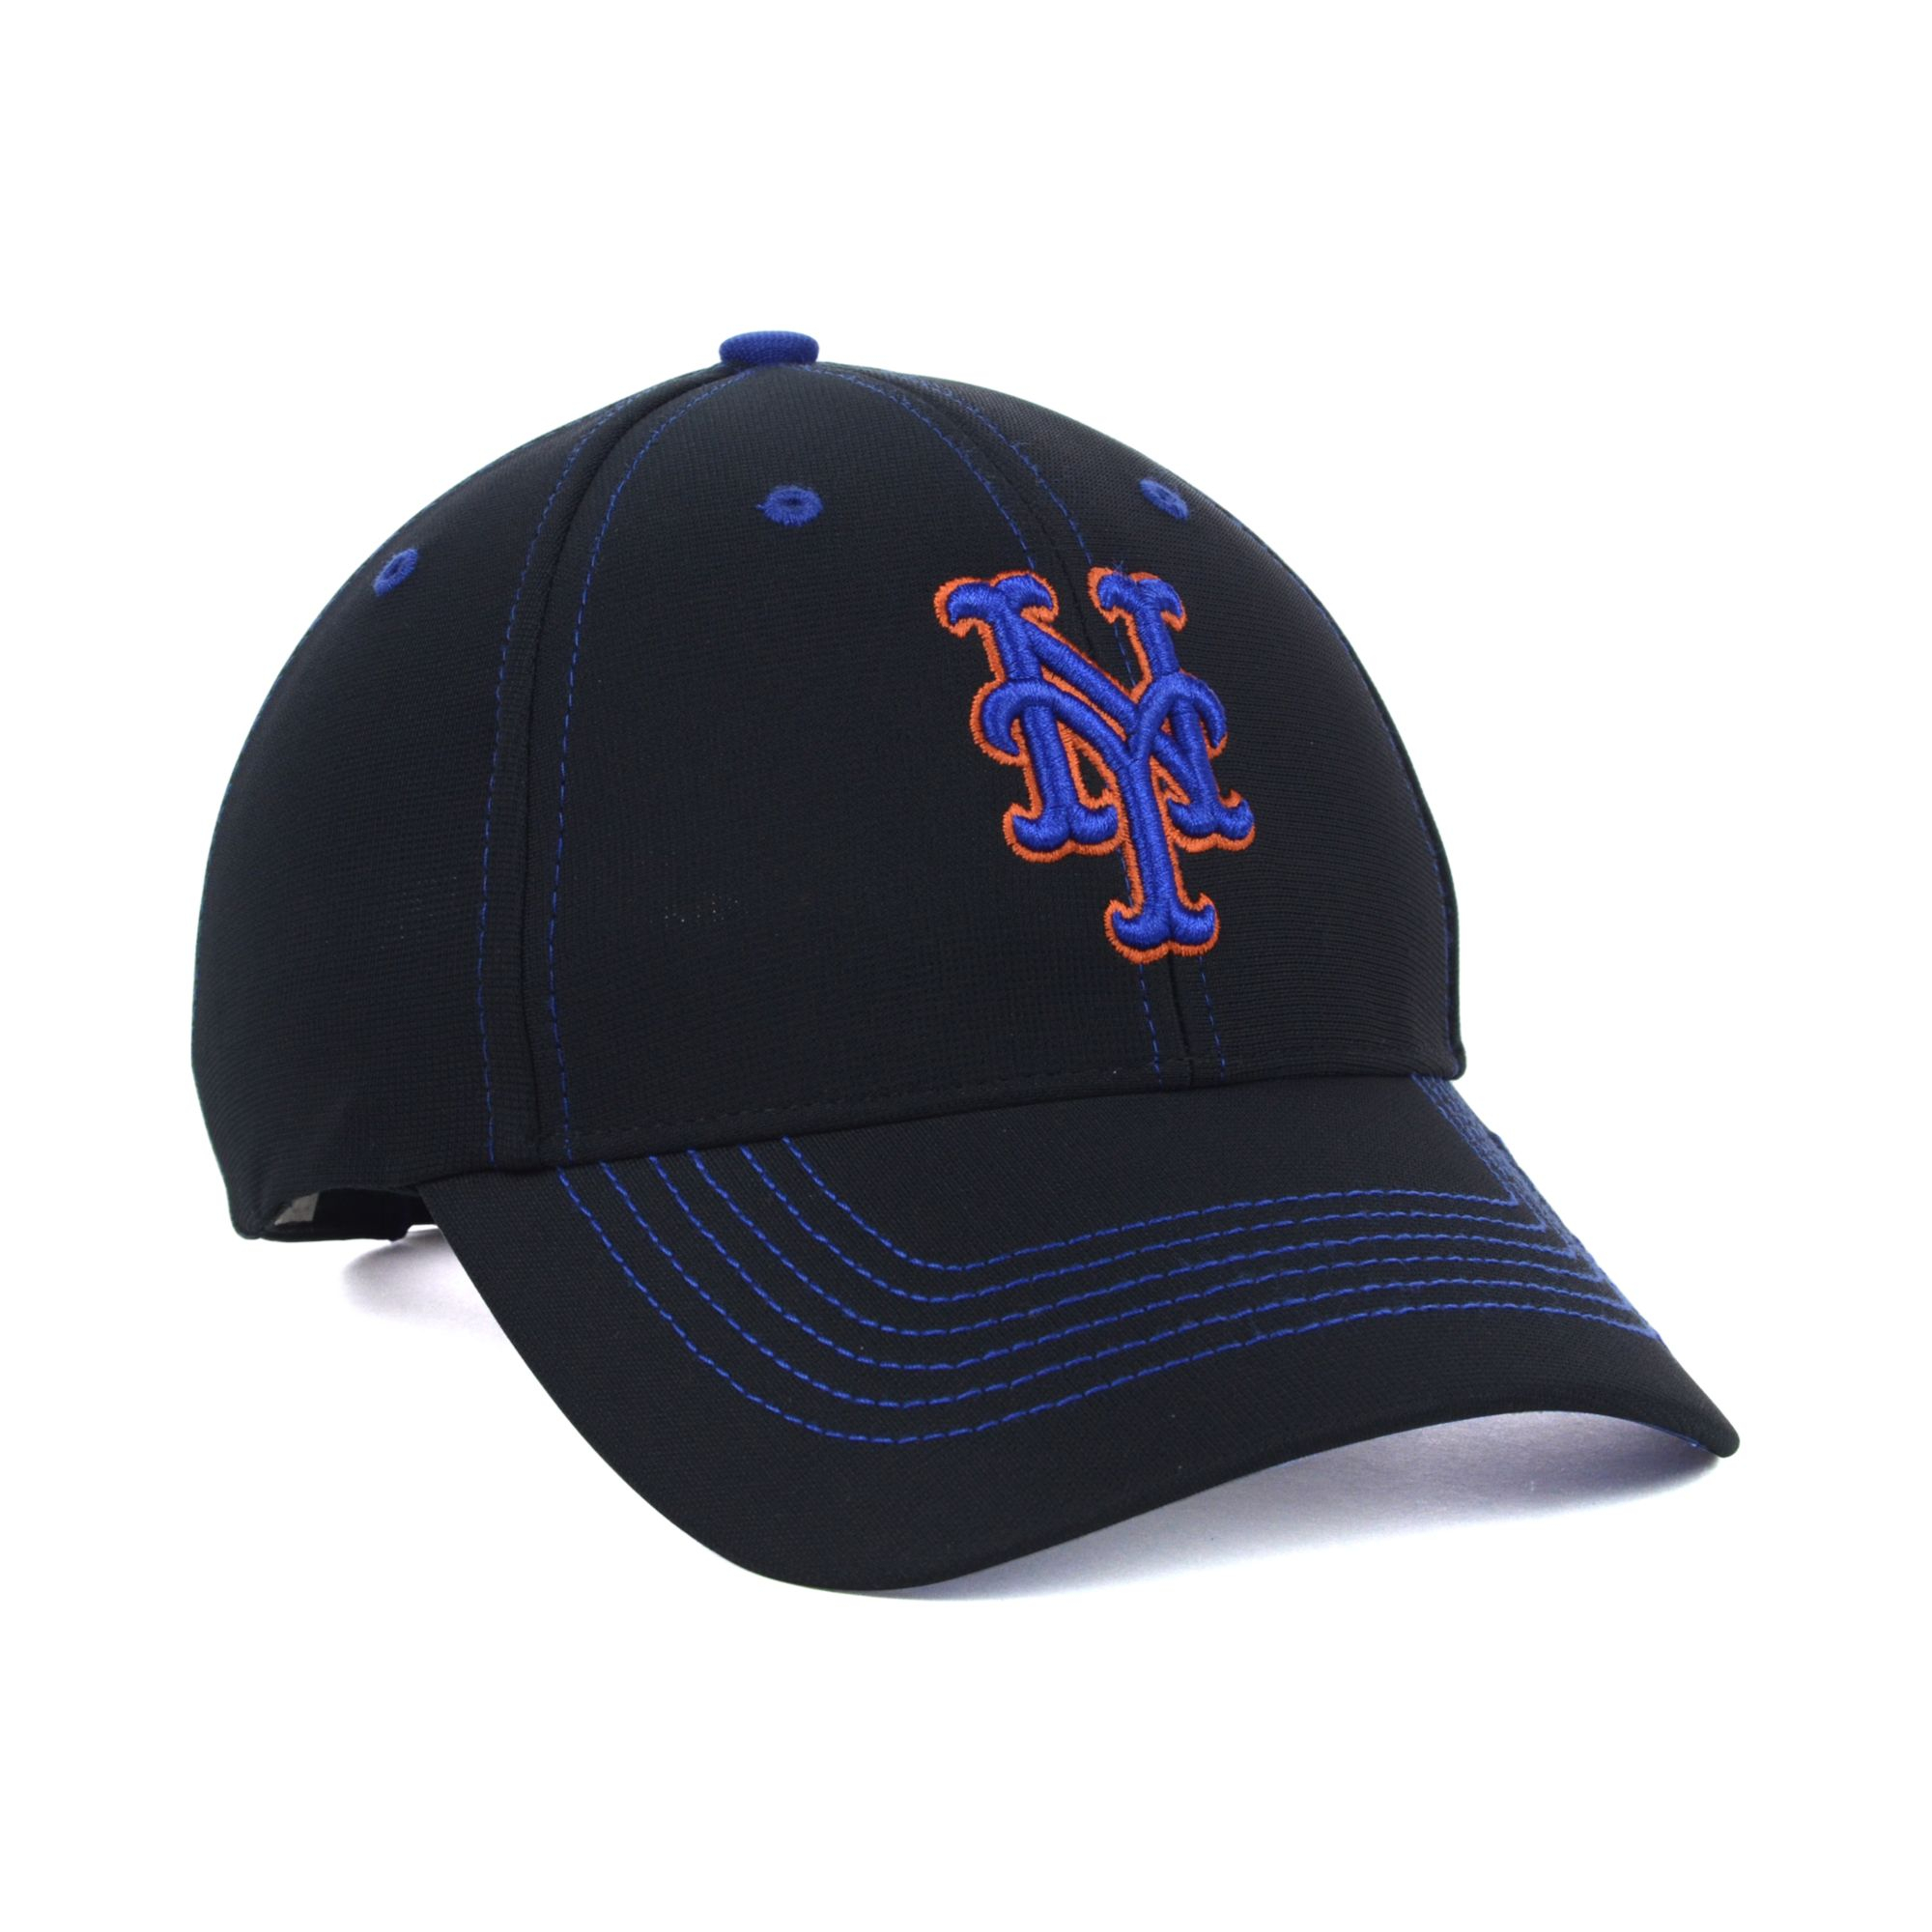 064c2e0d9bc794 uk france lyst 47 brand kids new york mets adjustable cap in black for men  26700